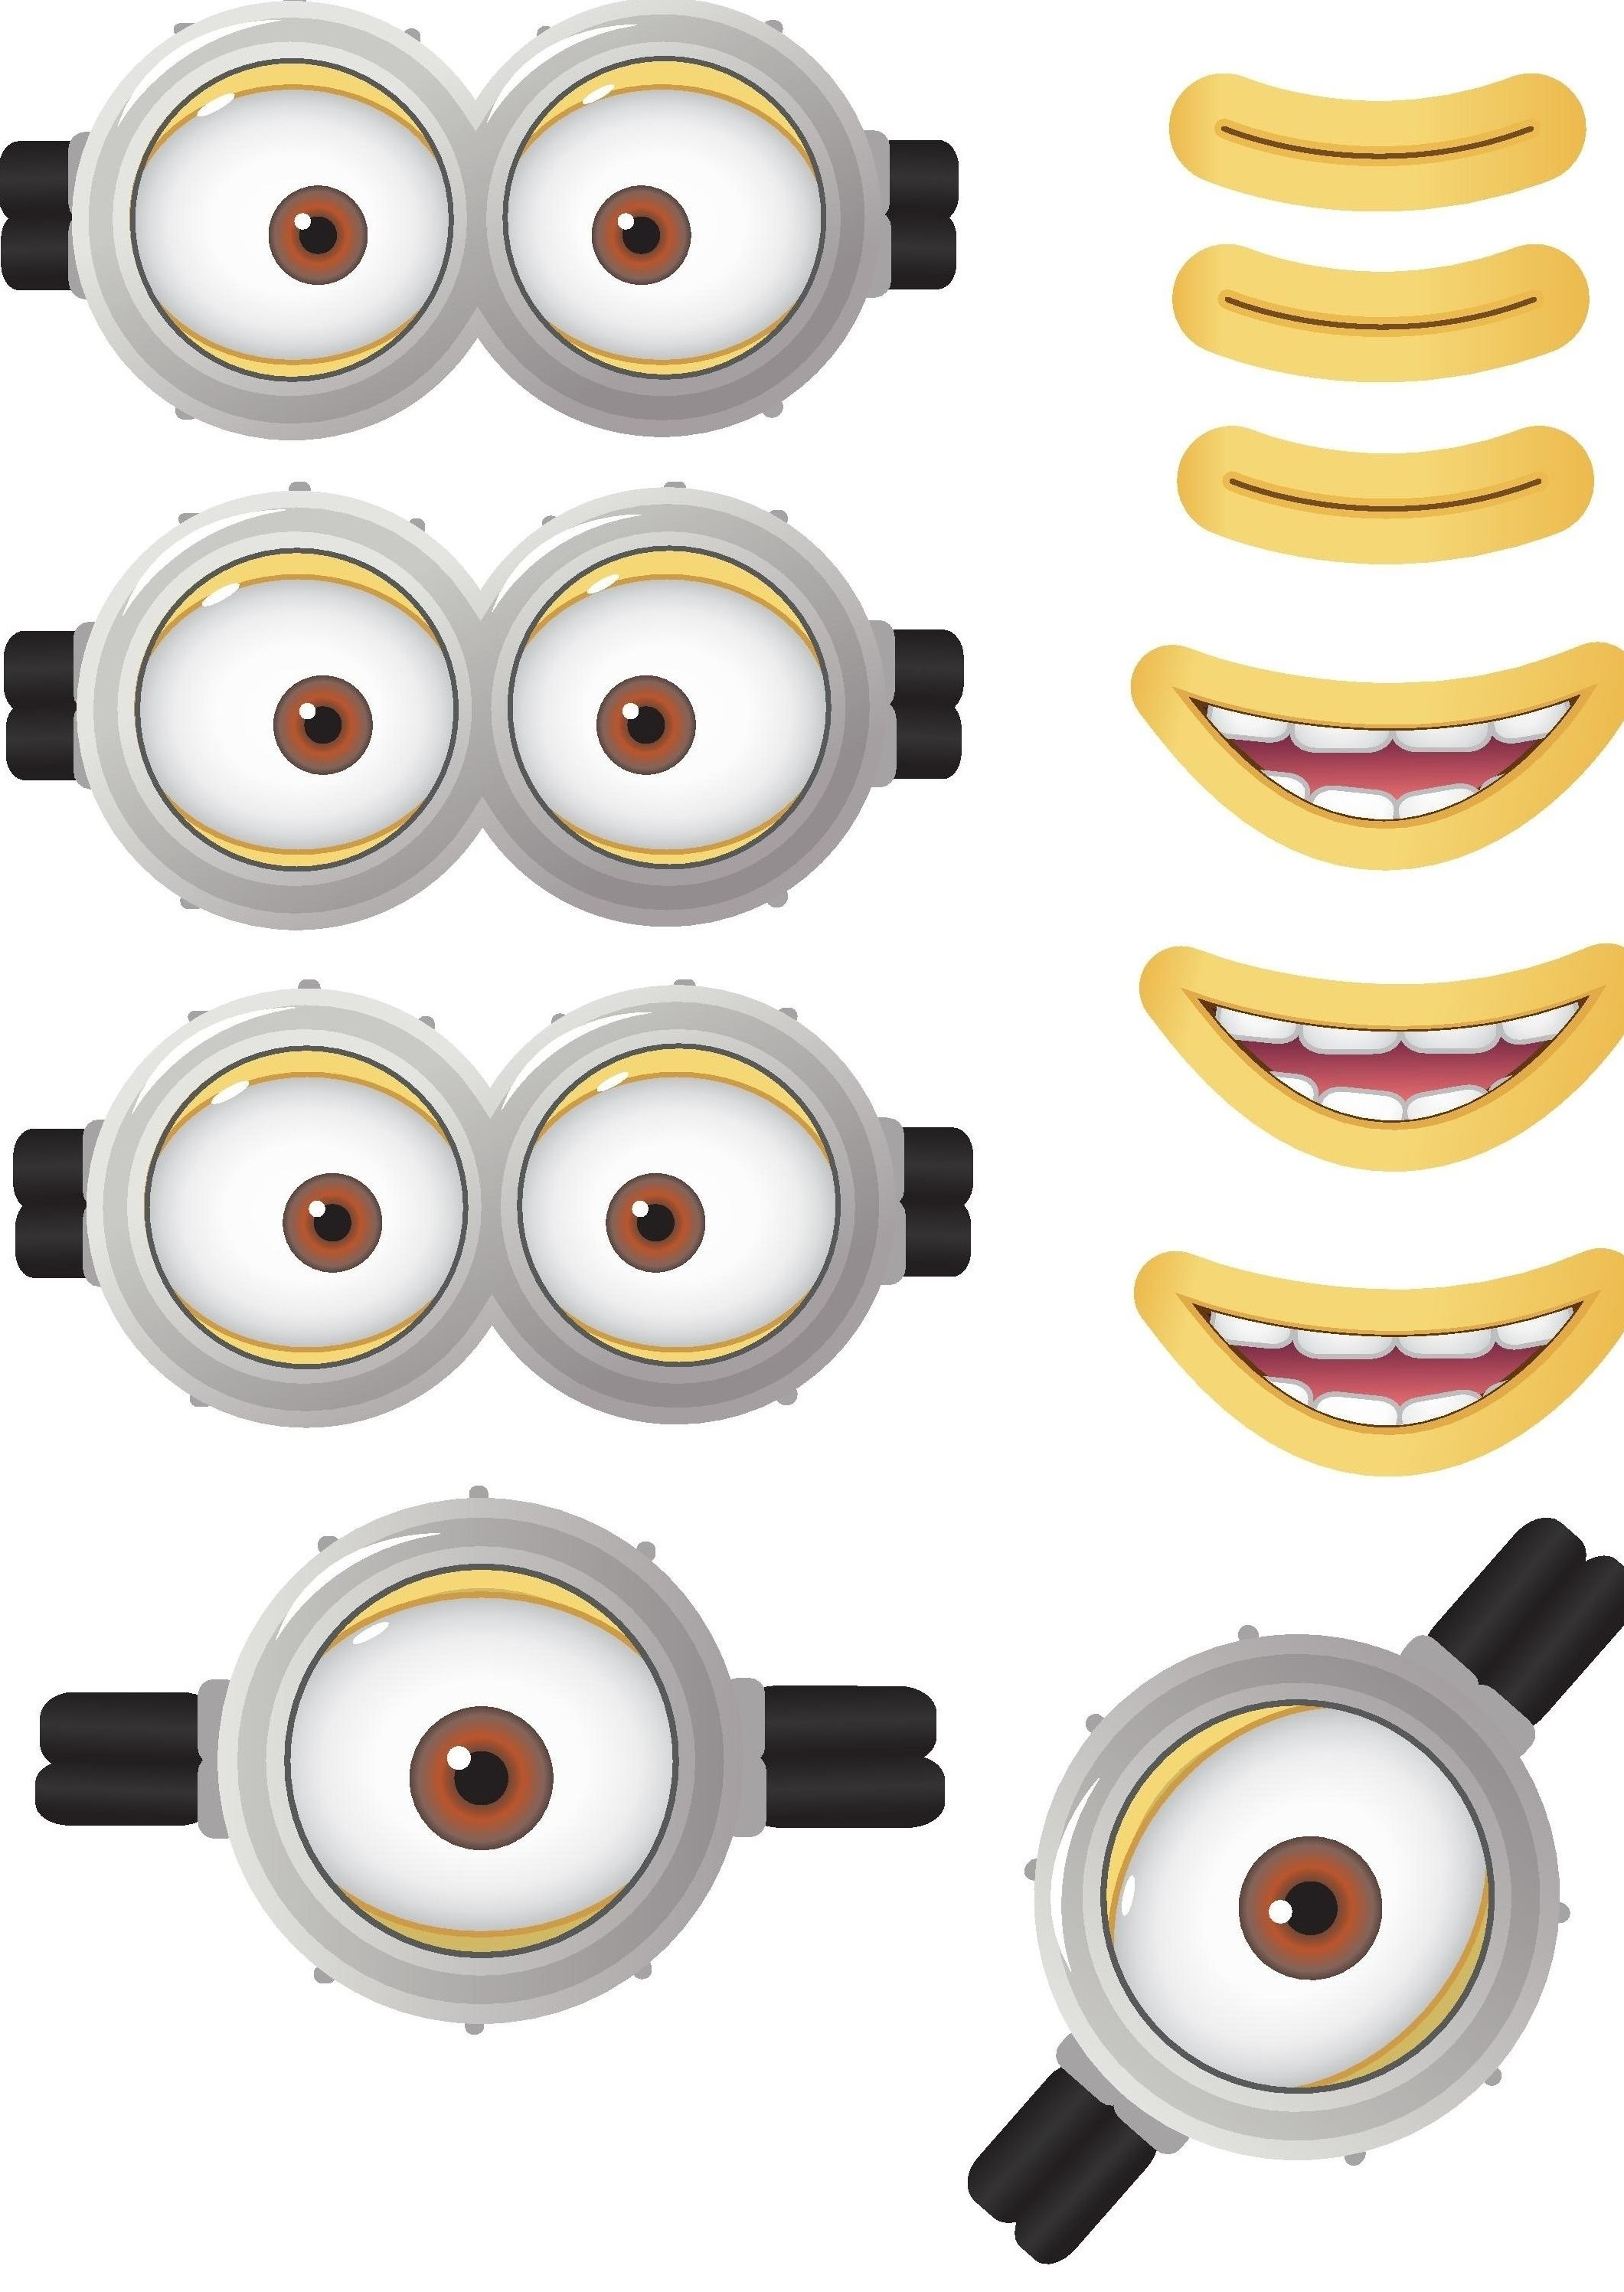 graphic relating to Minion Eye Printable named Minion Goggles Mouths Cost-free Printable Despicable Me 2 Envision